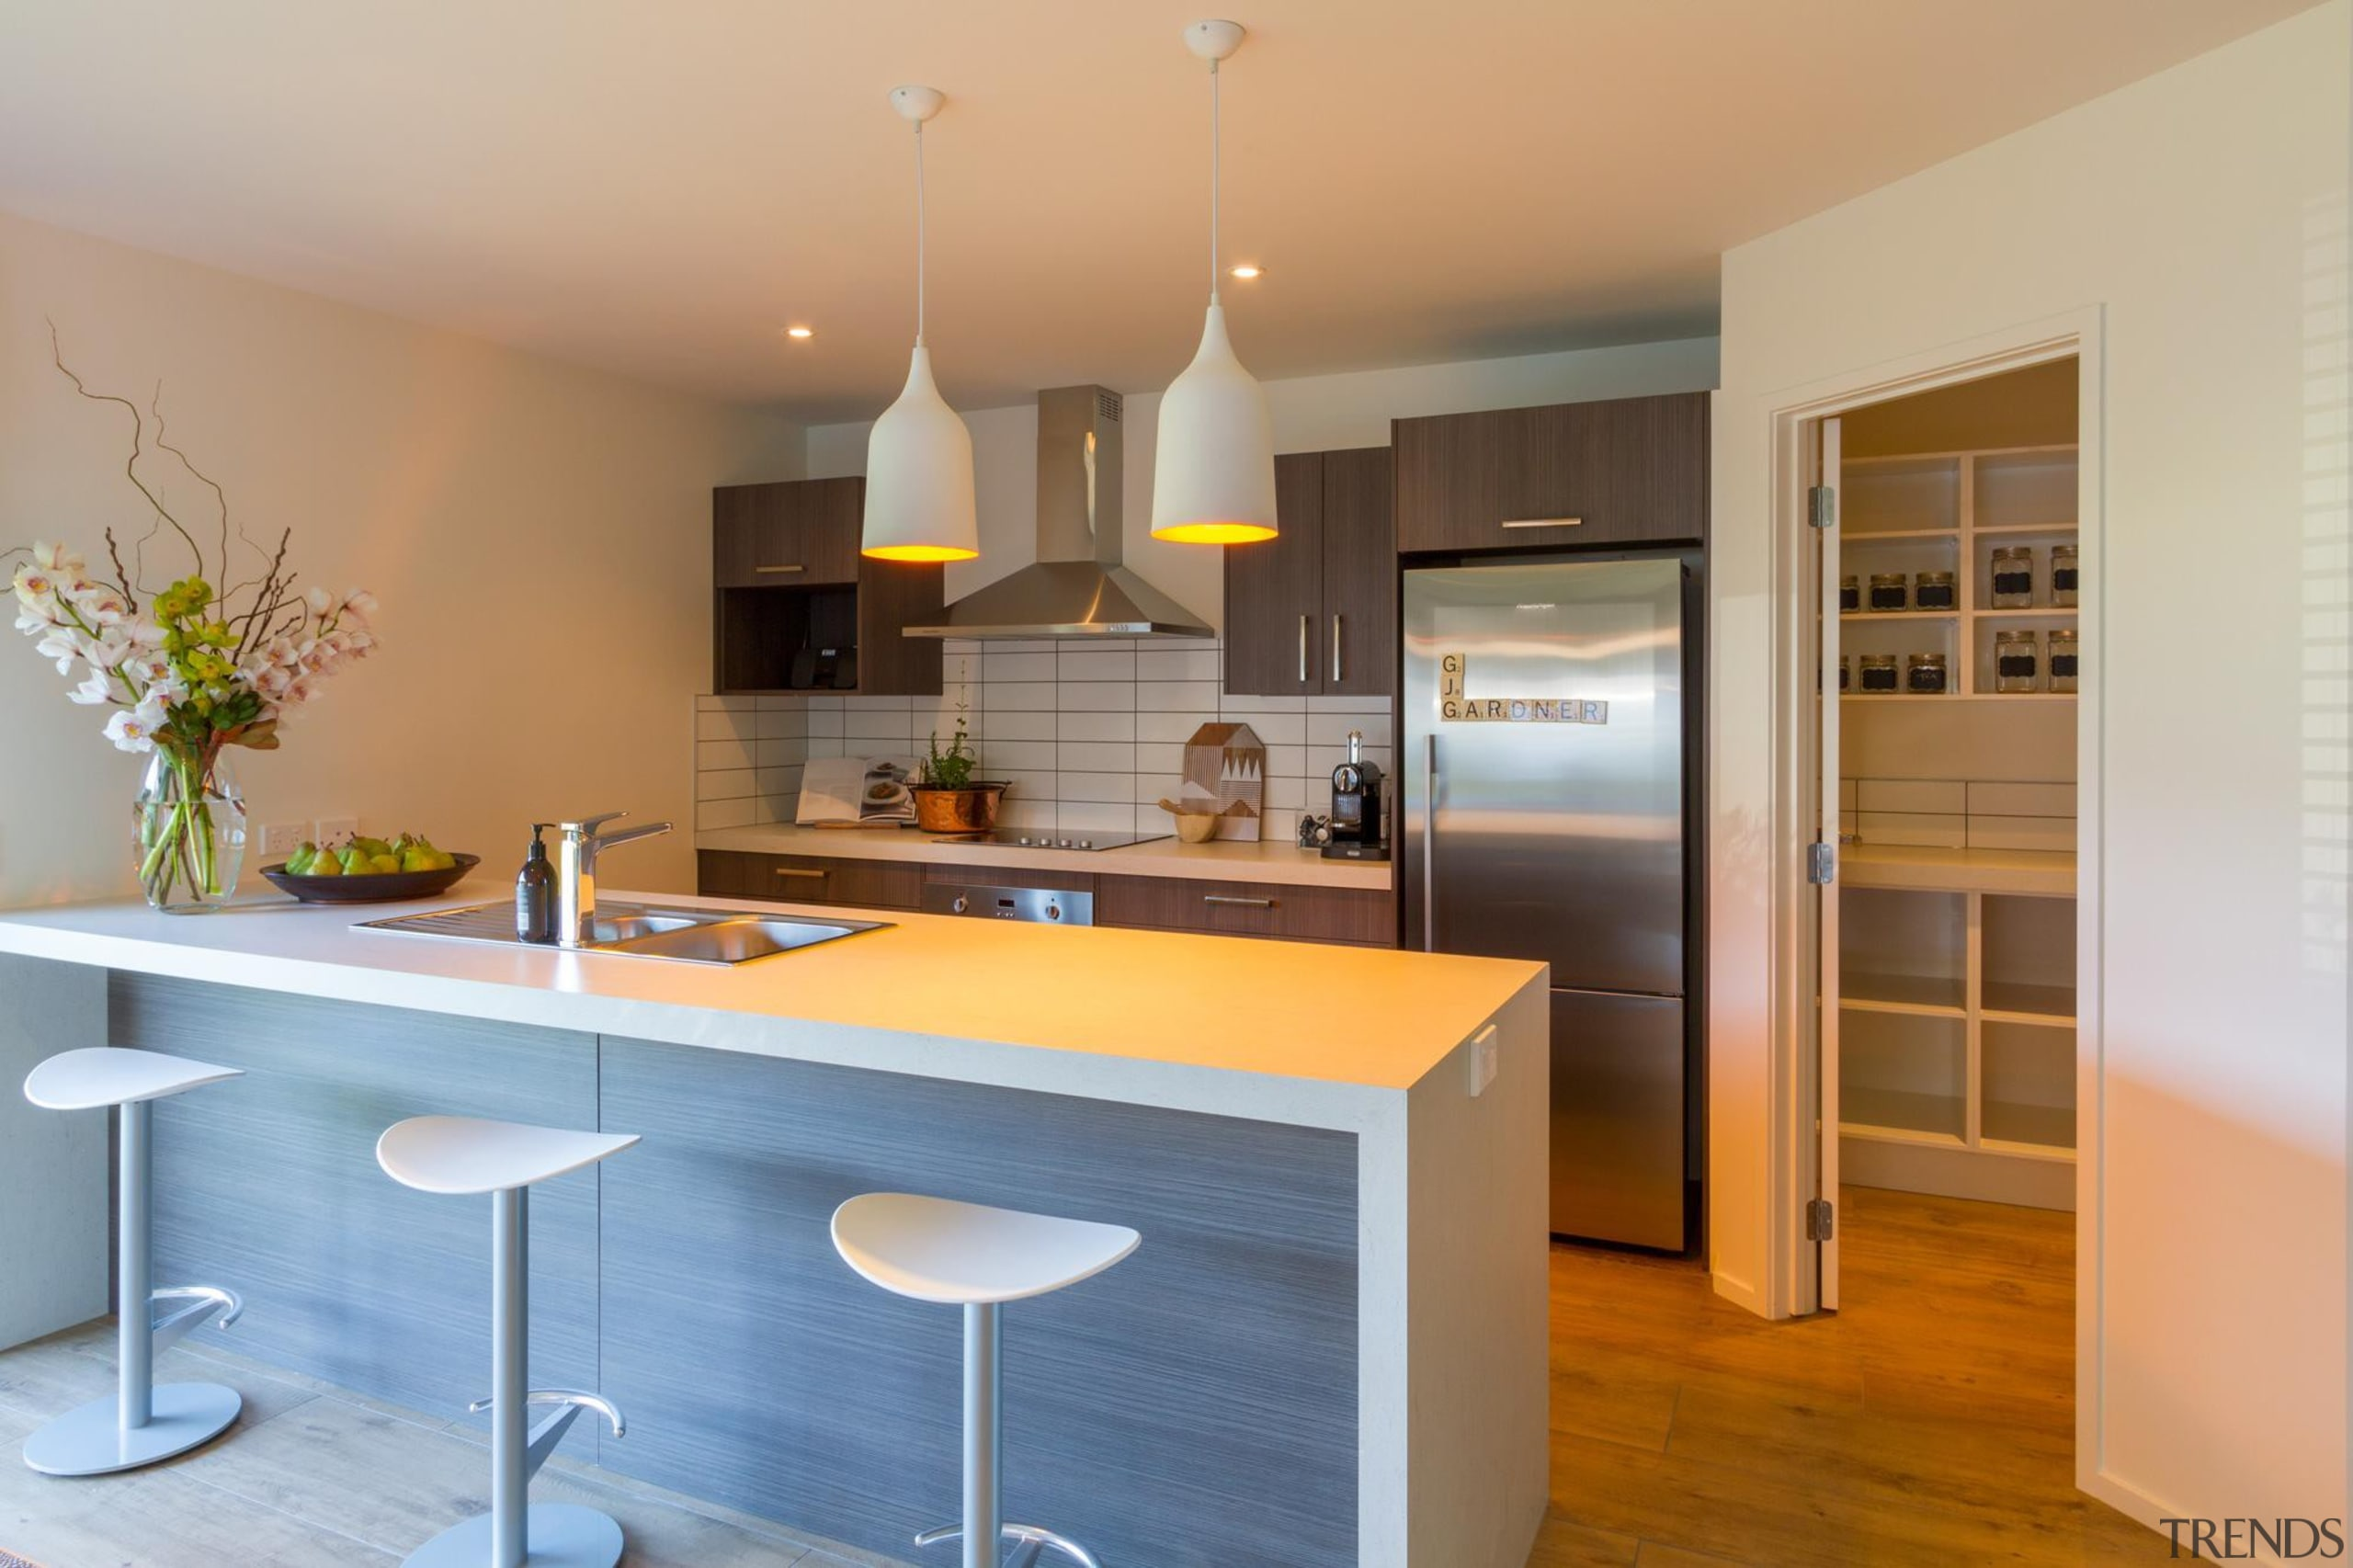 Practical family kitchen with large pantry and effortless cabinetry, countertop, cuisine classique, interior design, kitchen, real estate, room, gray, orange, brown